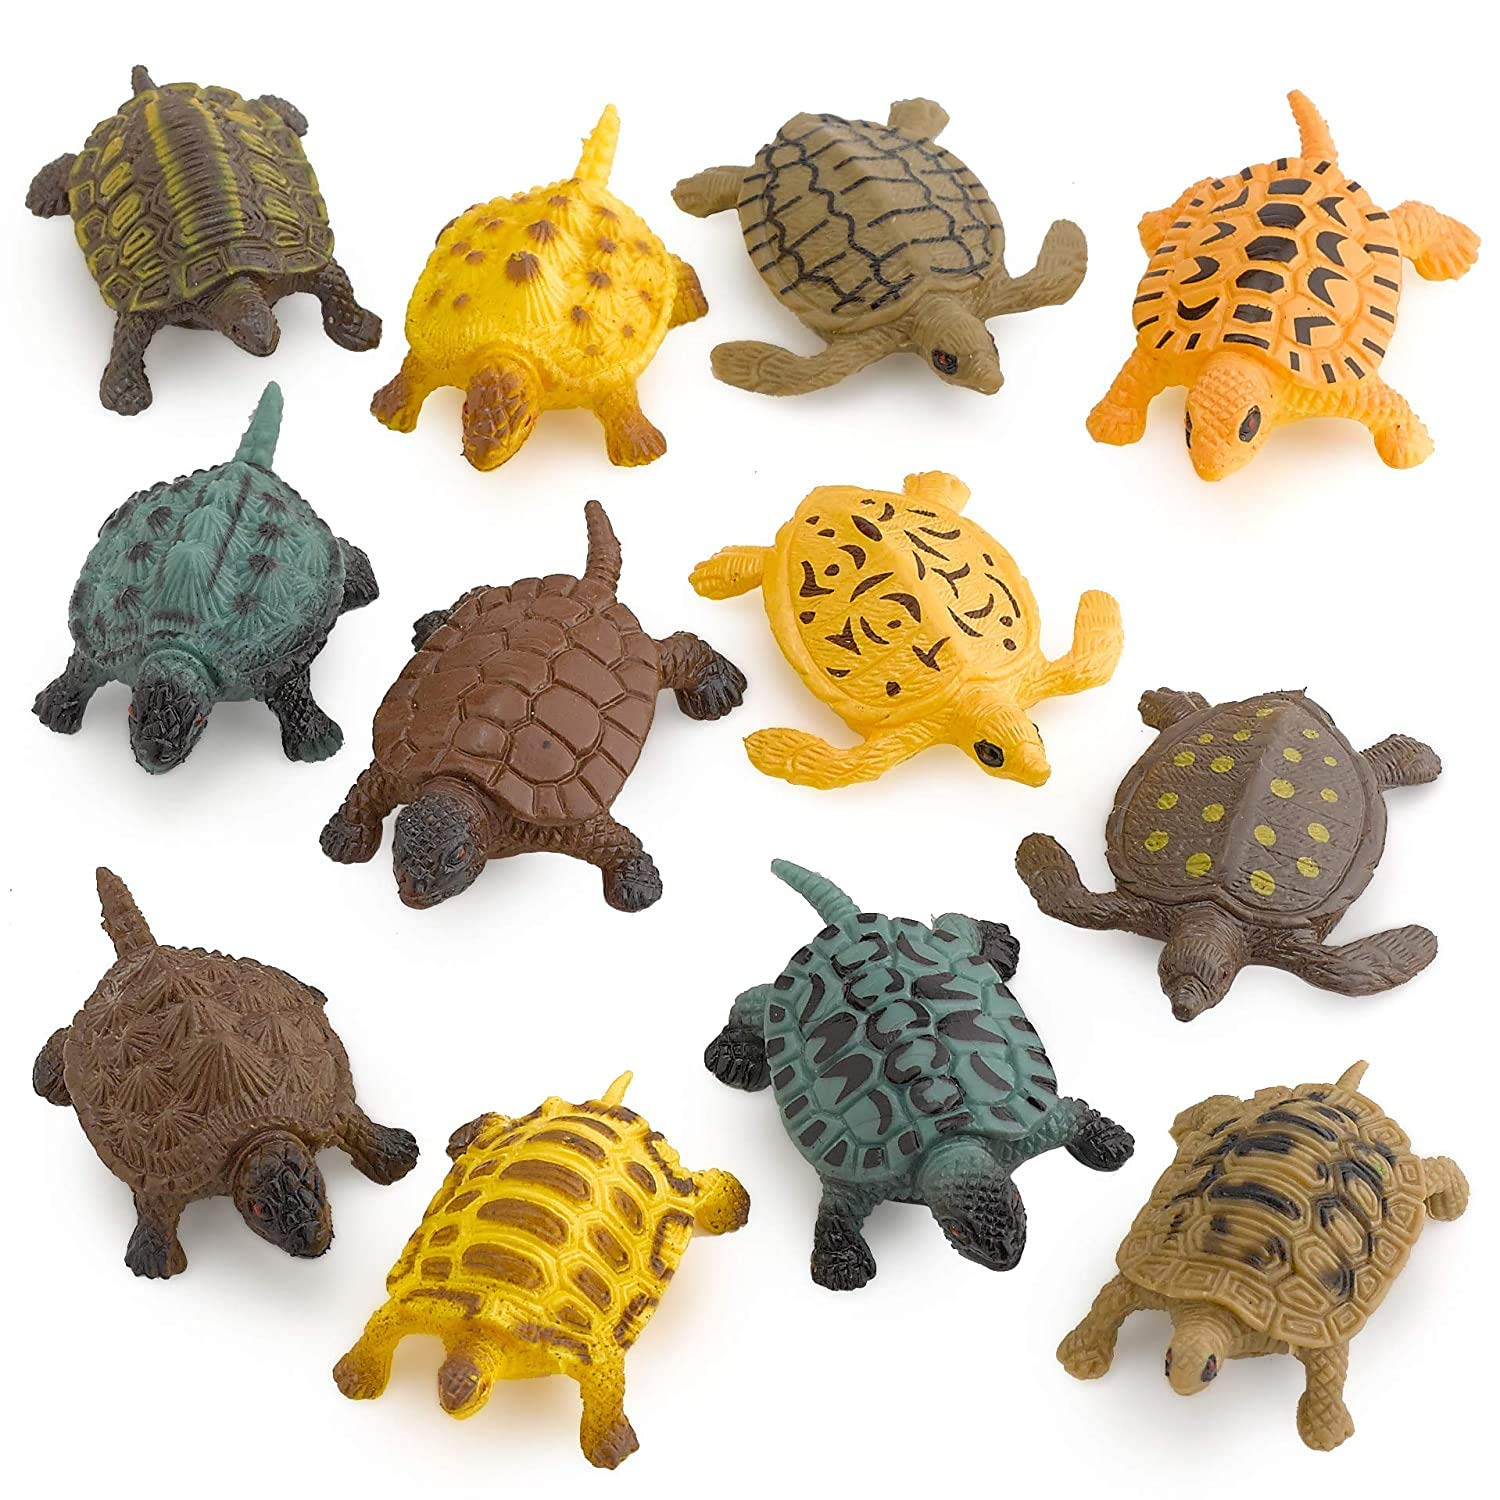 Amazon Com Kicko Small Turtle Baby Bath Toys 12 Pieces Of Assorted Plastic Tortoises Ponds And Aquarium Decorations Indoor And Outdoor Accents Kids Pet Collection Party Favors Toys Games